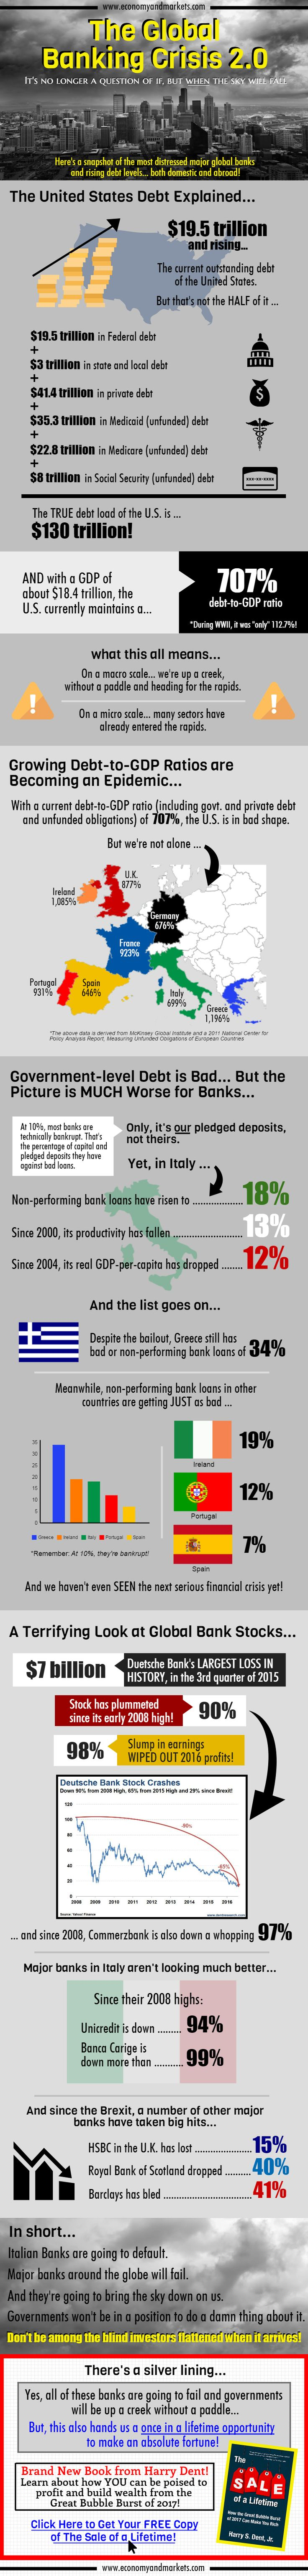 The Global Banking Crisis 2.0 Infographic | Survive and Prosper With the Power of Demographics